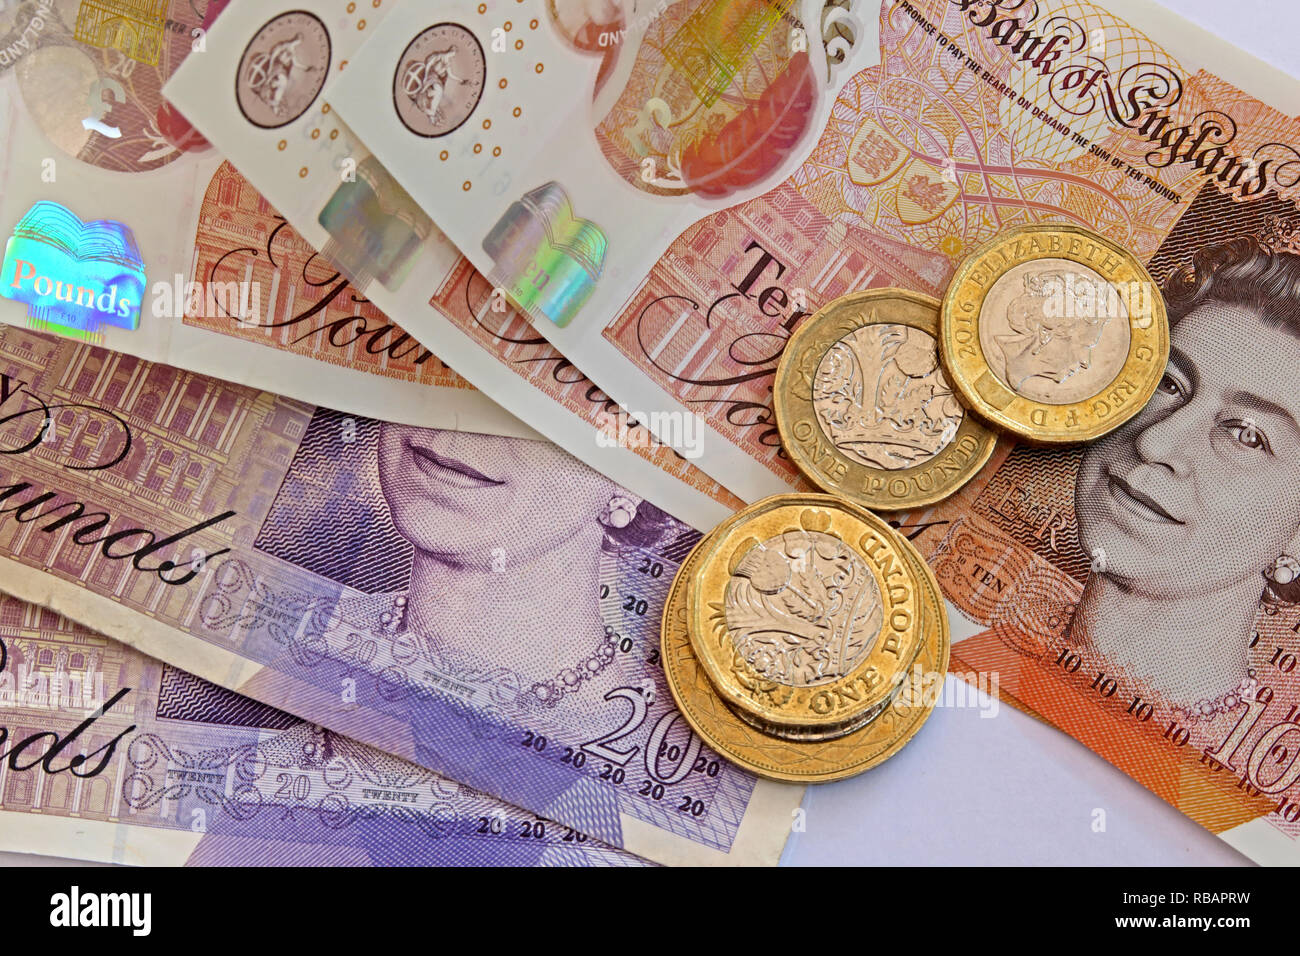 Bank Of England plastic £5 £10 Five pound and ten pound bank notes, with coins - Stock Image